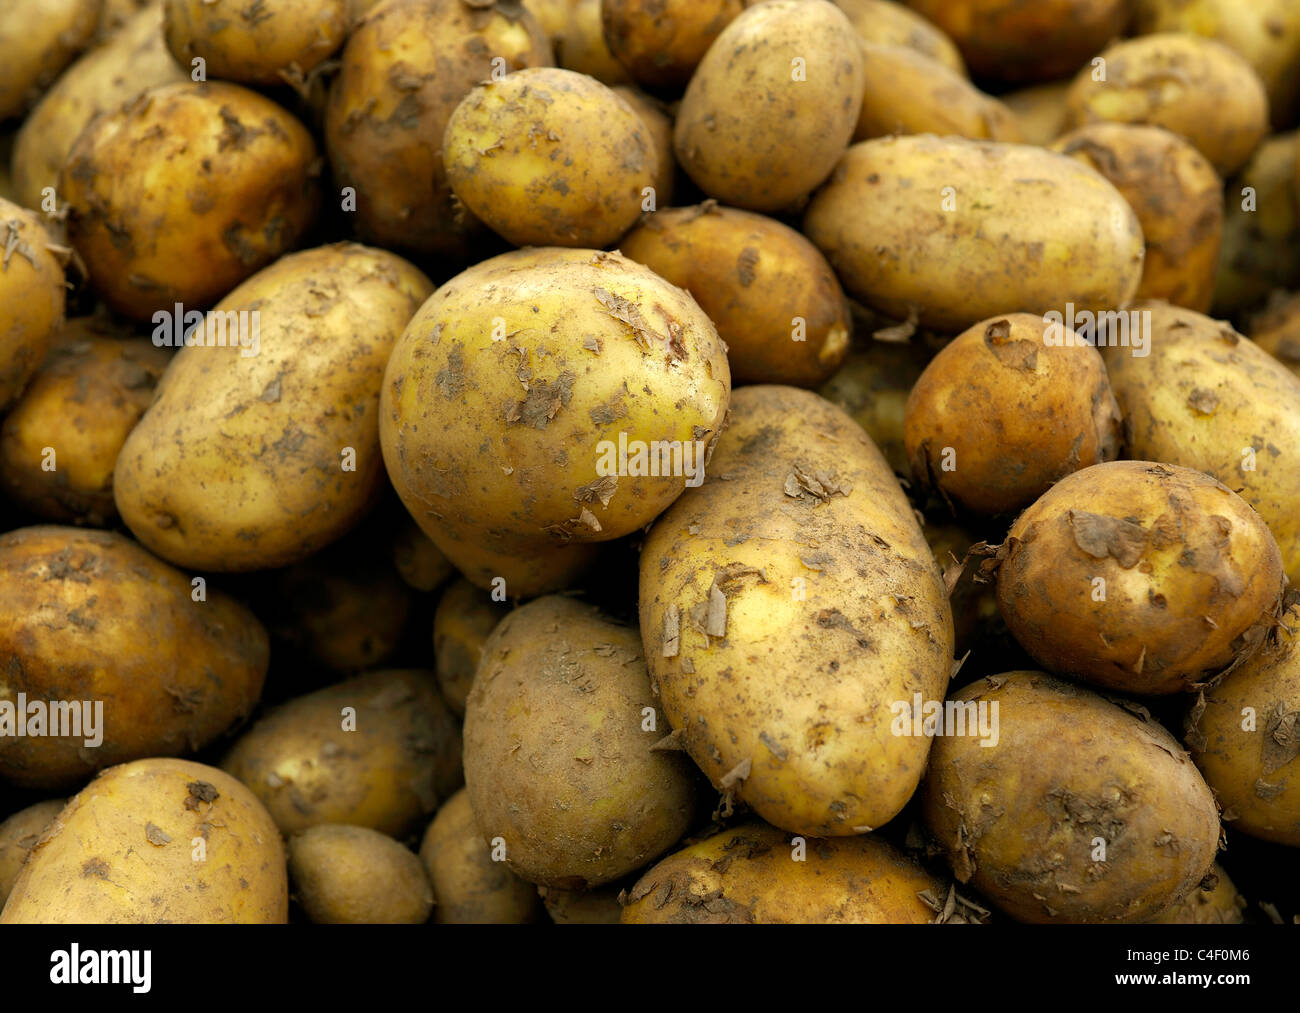 ORGANIC POTATOES - Stock Image